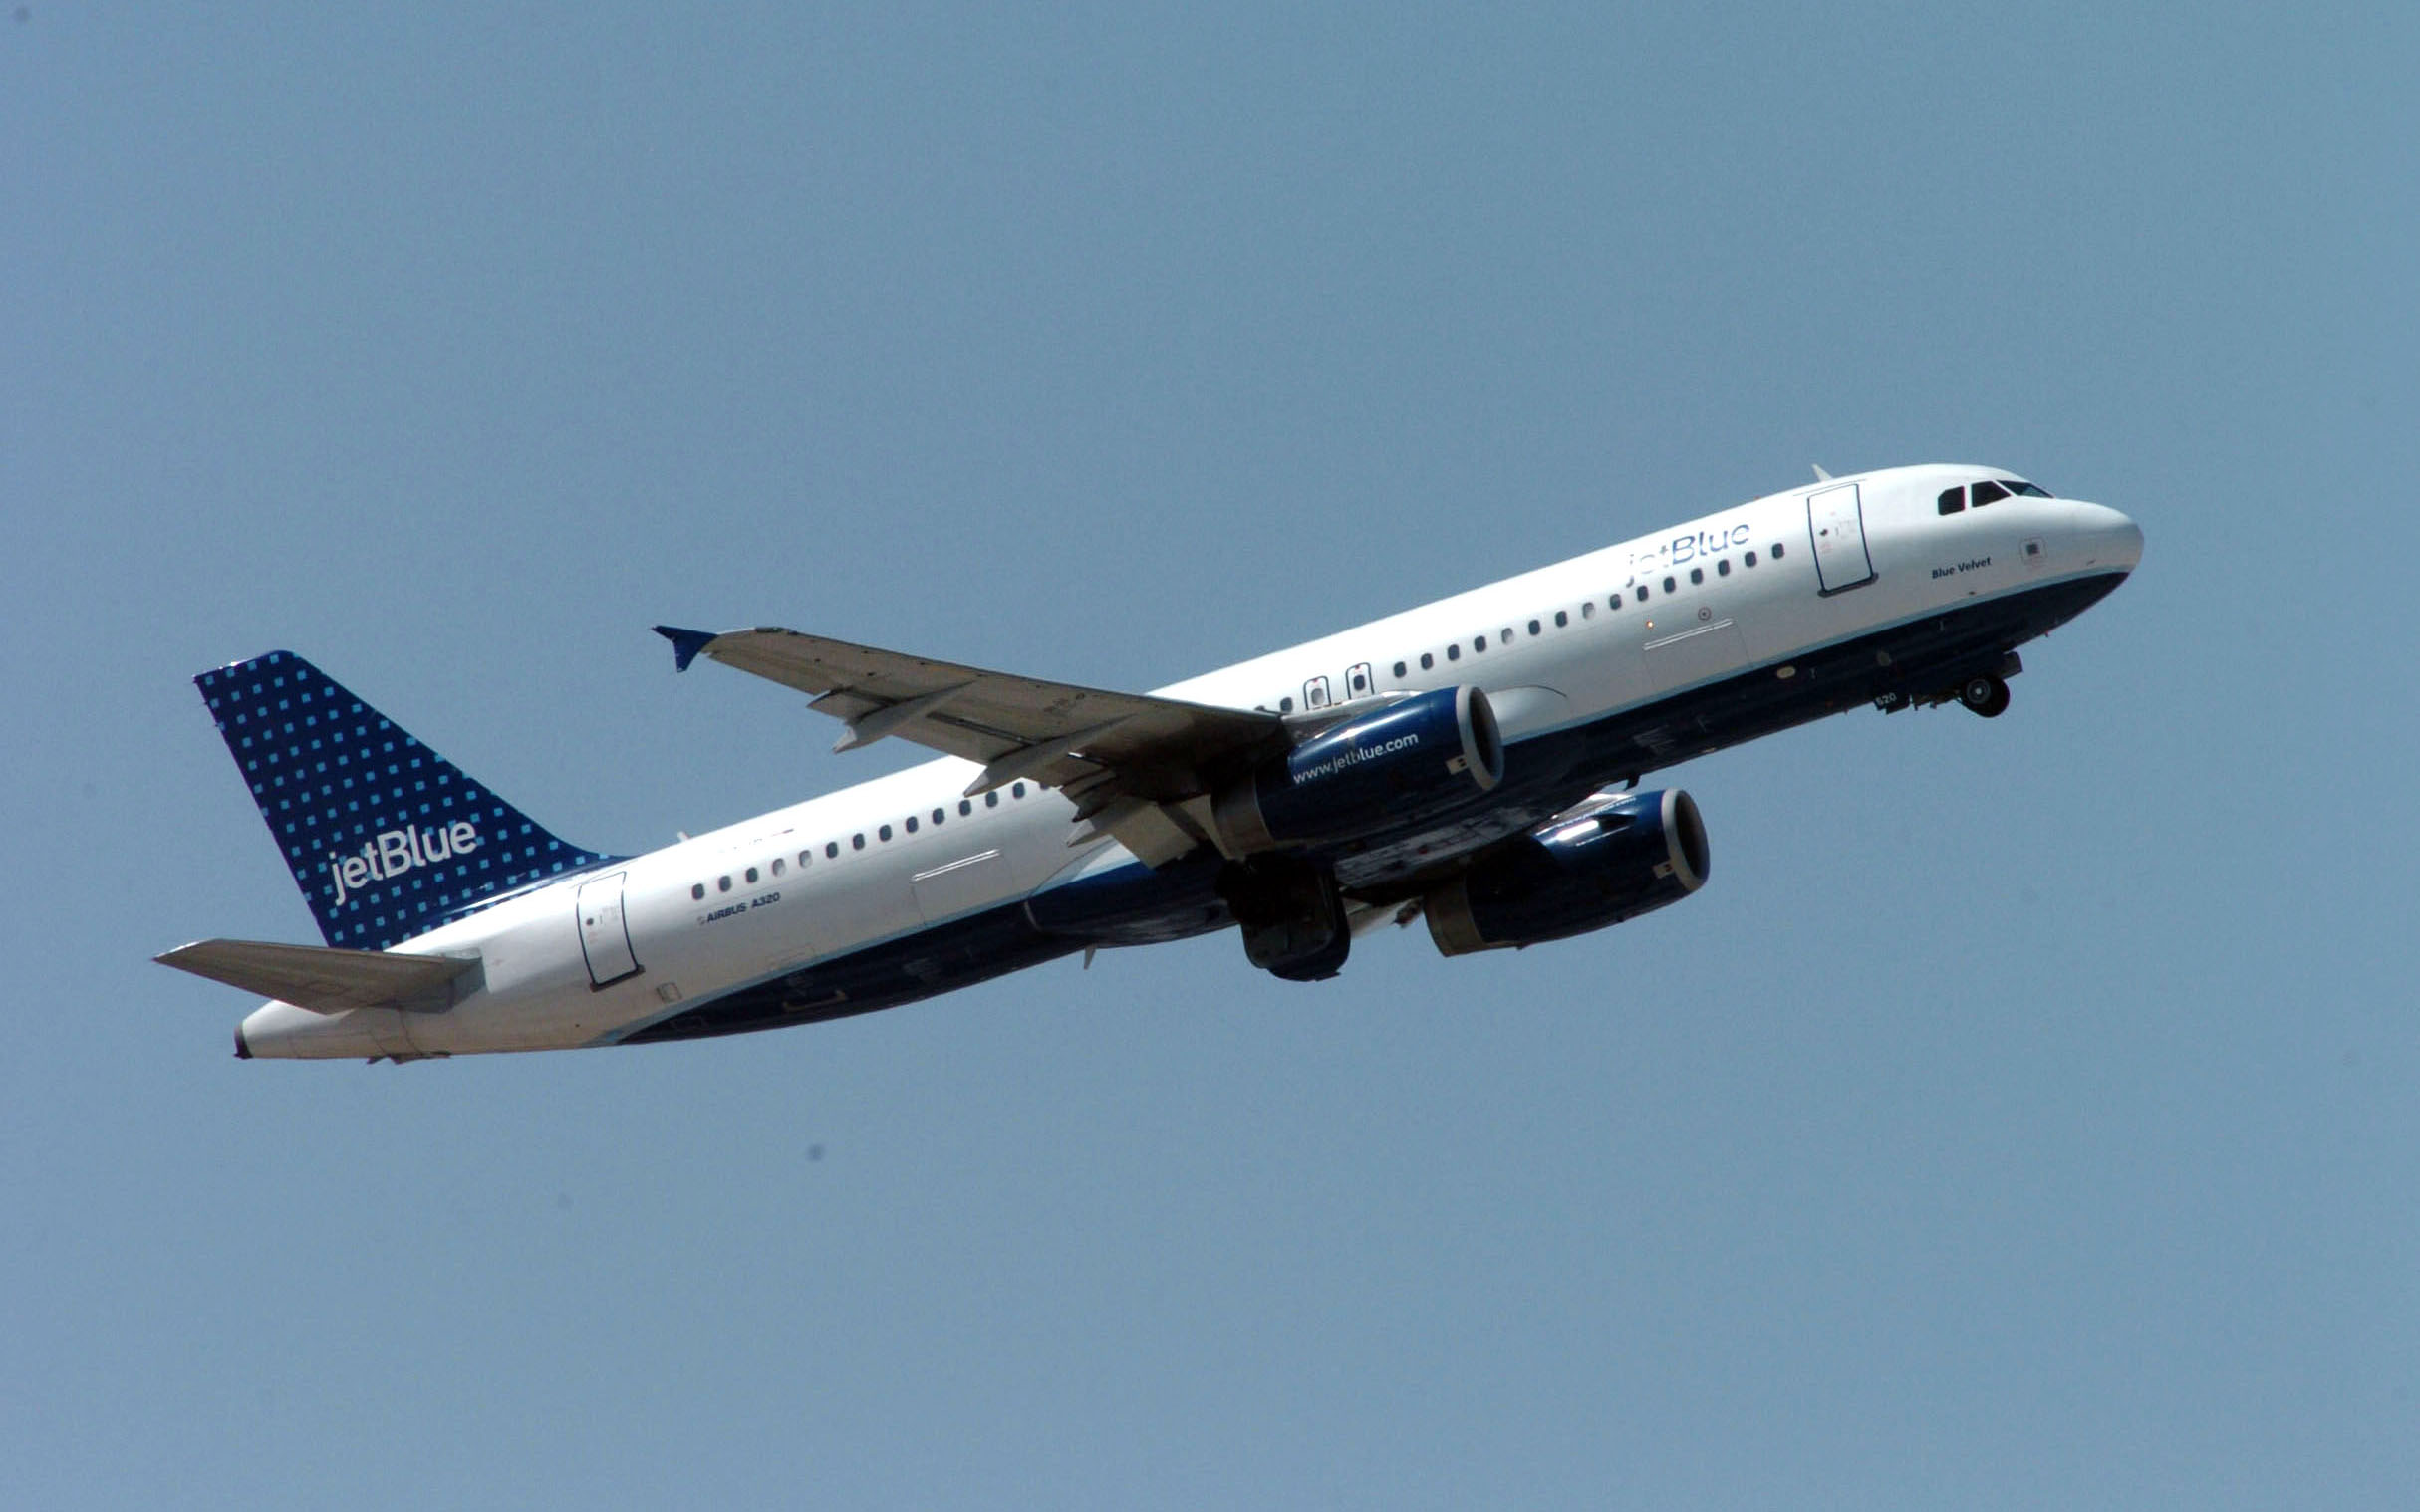 A JetBlue Flight Had to Turn Around After an 'Unusual Odor' Was Detected On Board